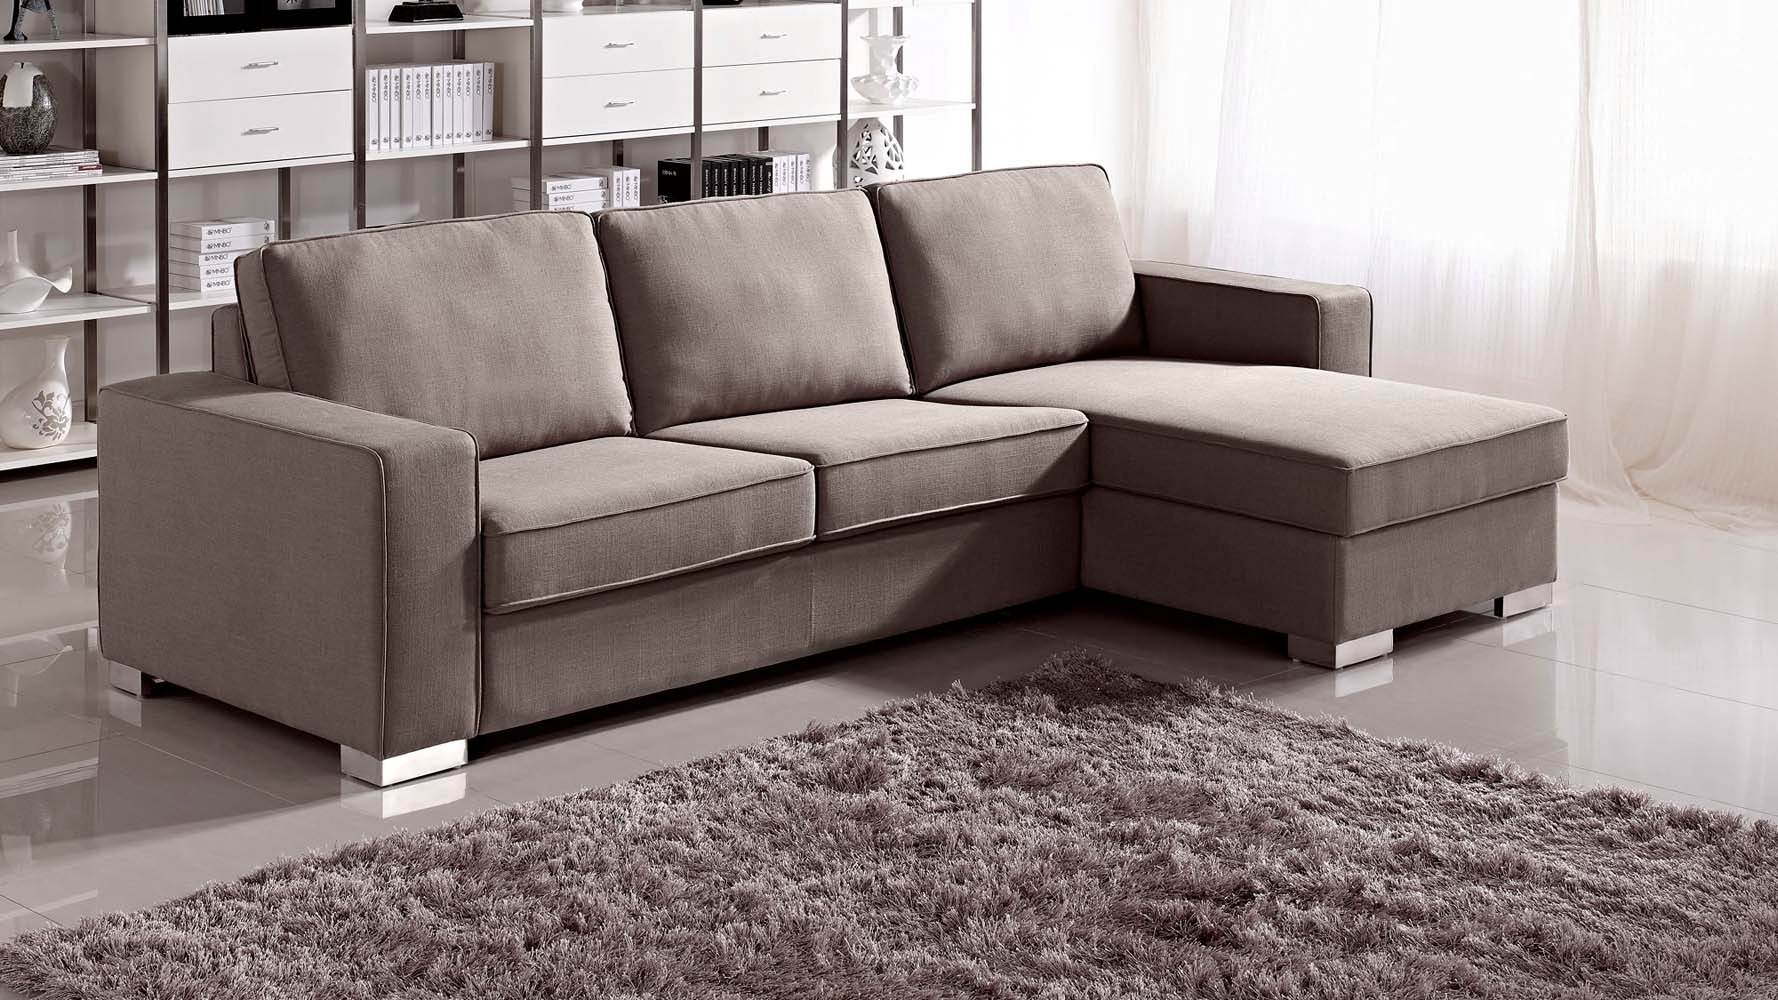 Well Known Pull Out Sofa Bed Sectional Sleeper Sofa Costco Walmart Pull Out In Sleeper Sofas With Storage Chaise (View 14 of 15)